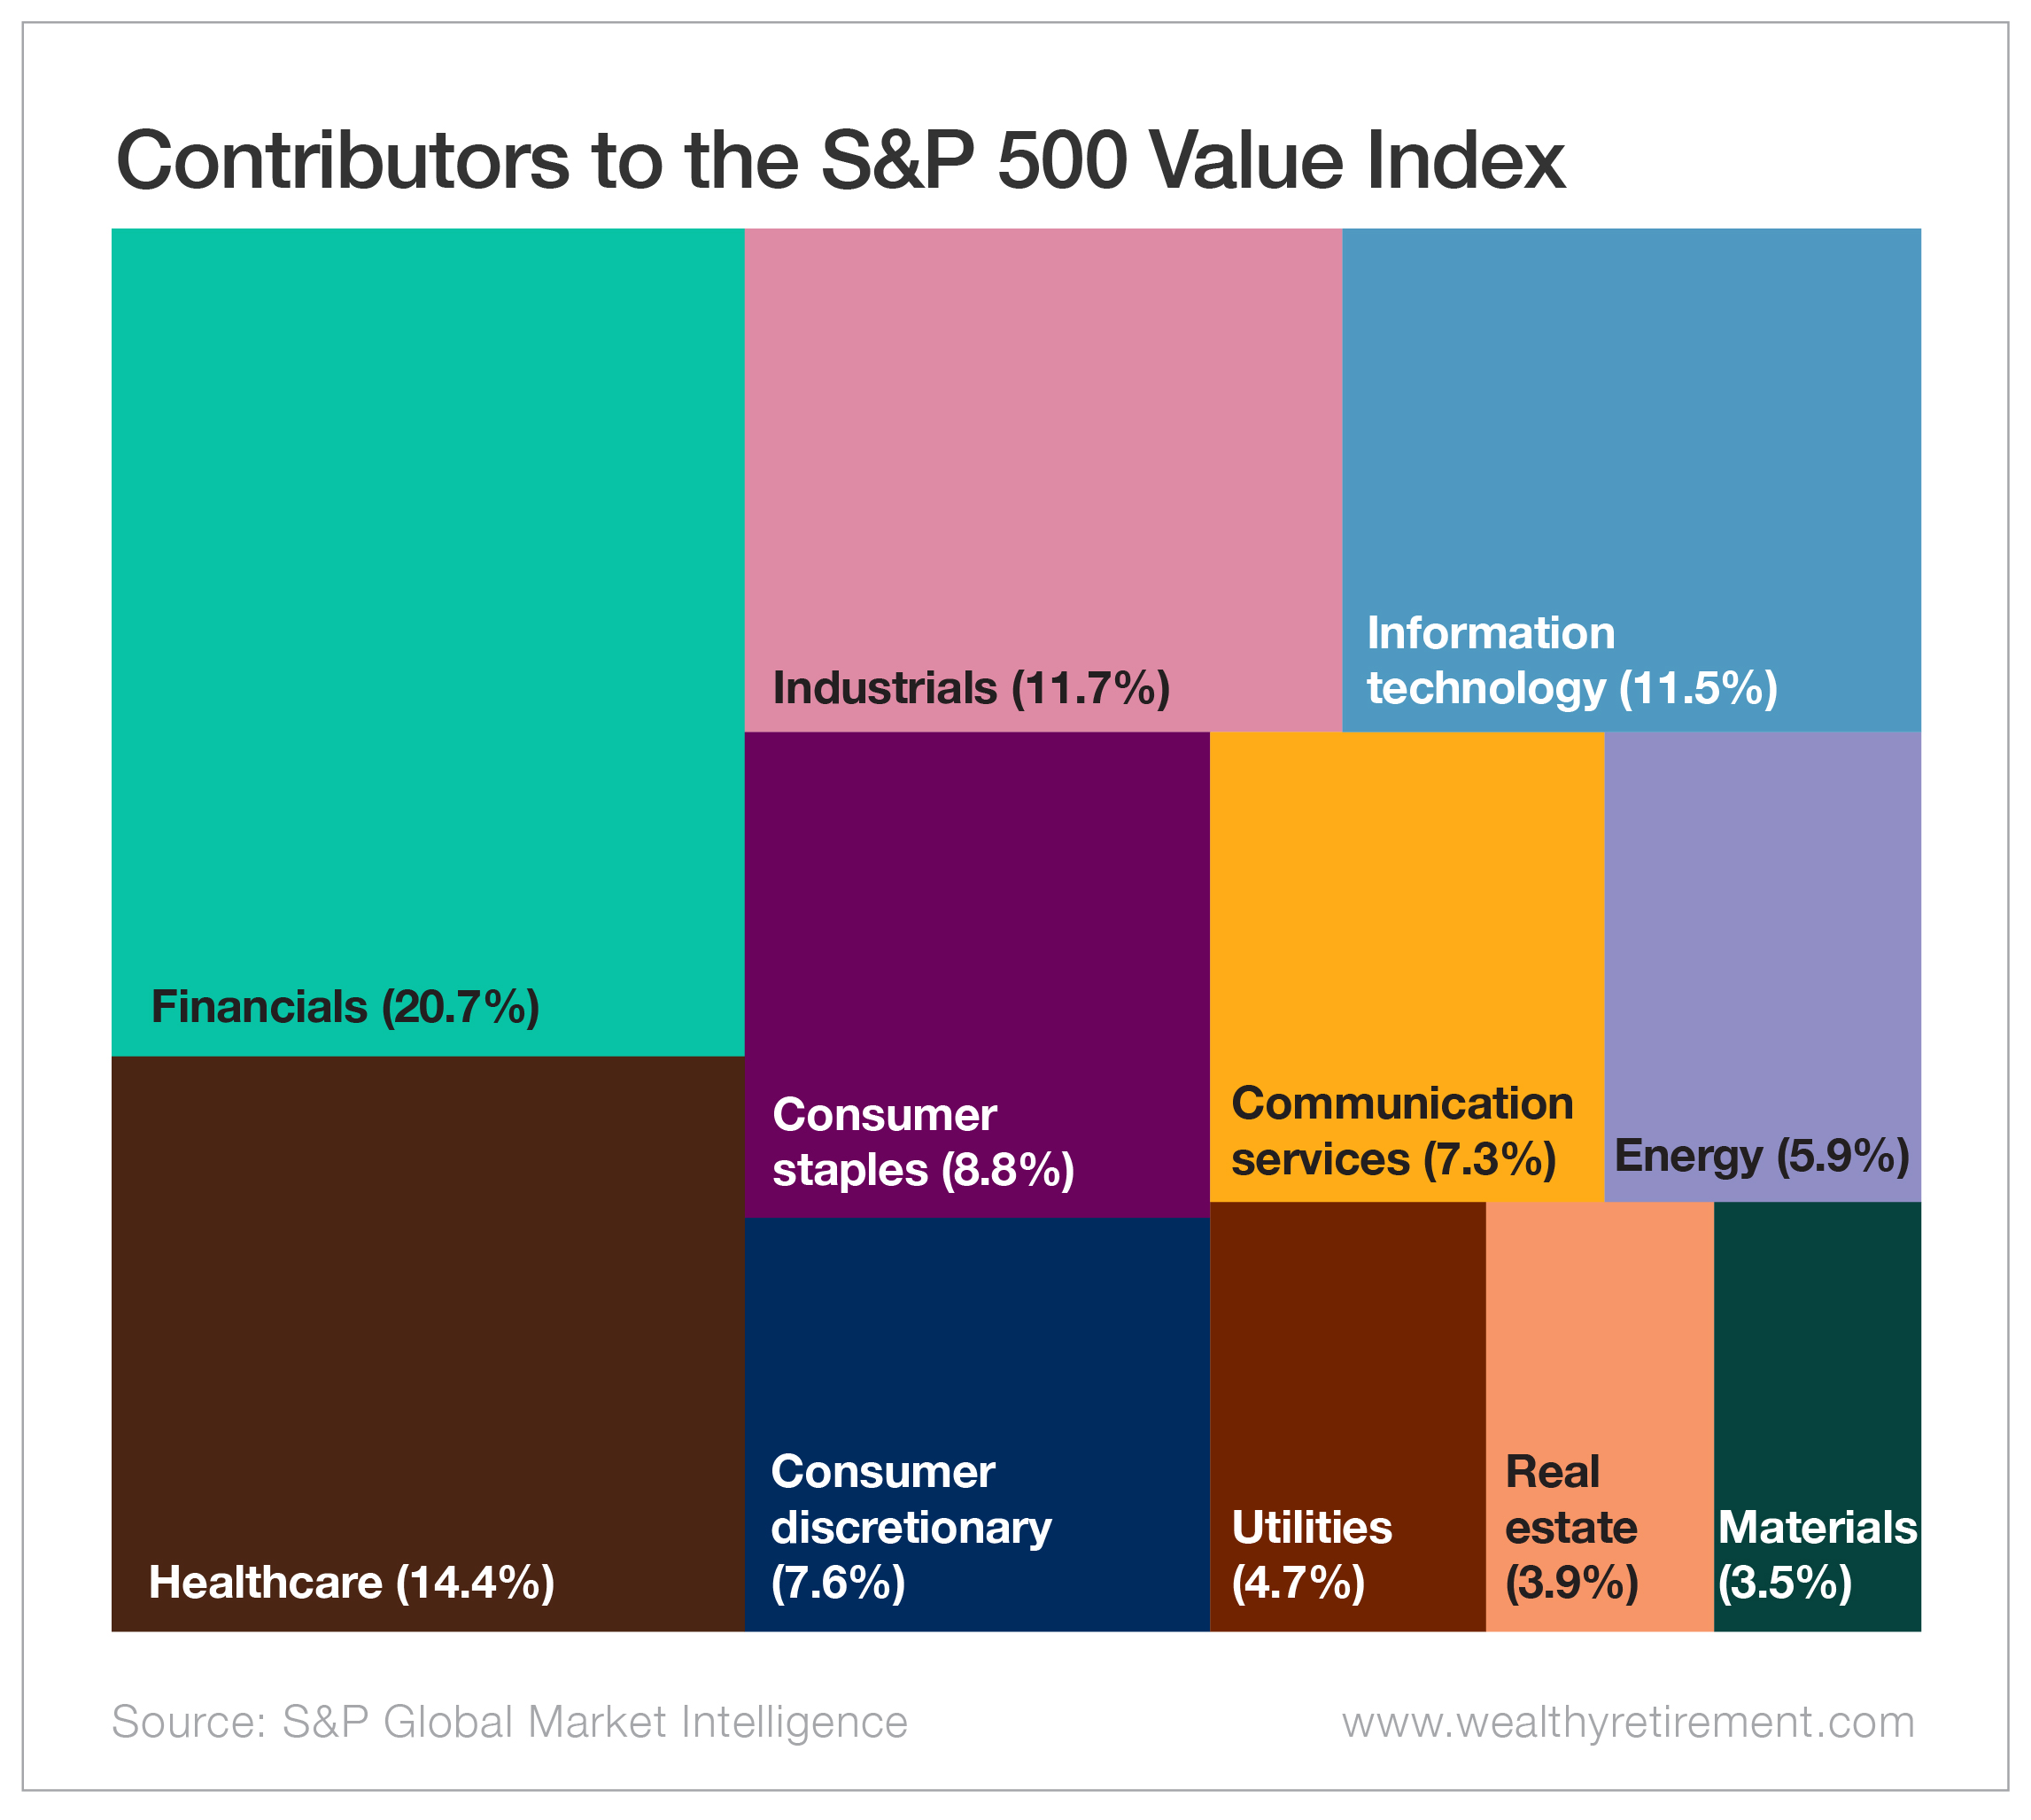 Contributors to the S&P 500 Value Index